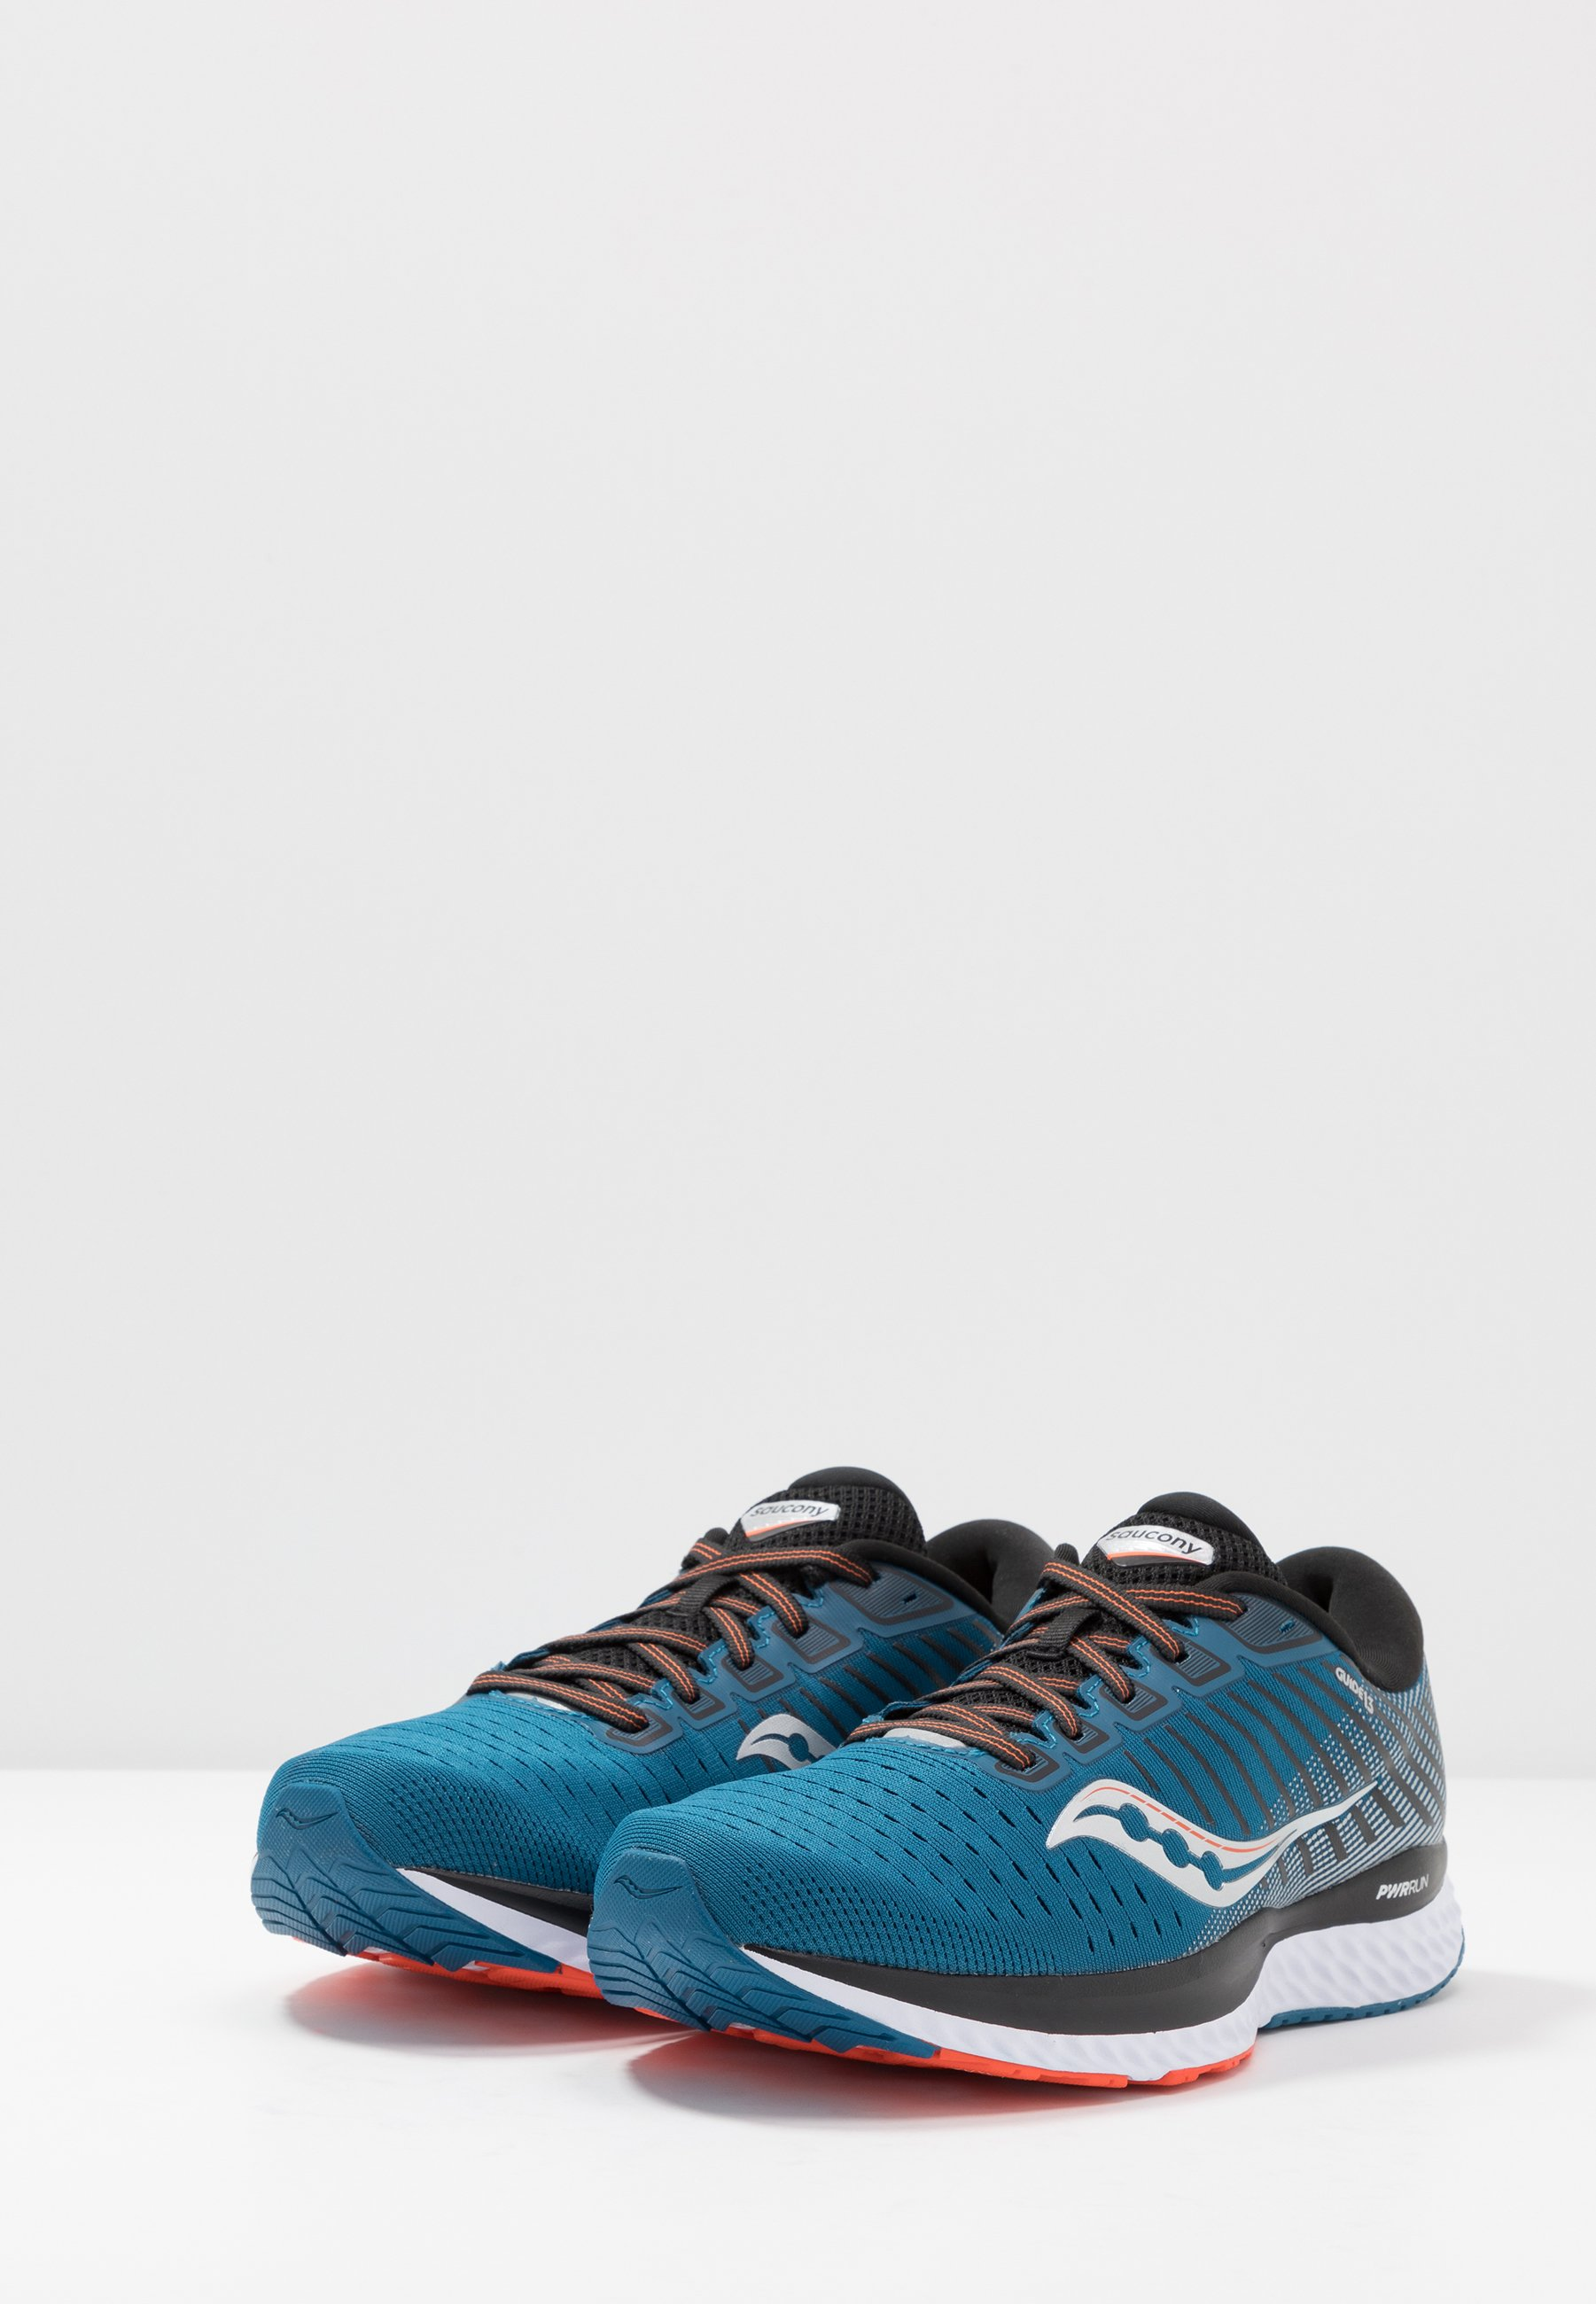 Saucony Guide 13 - Chaussures De Running Stables Blue/silver